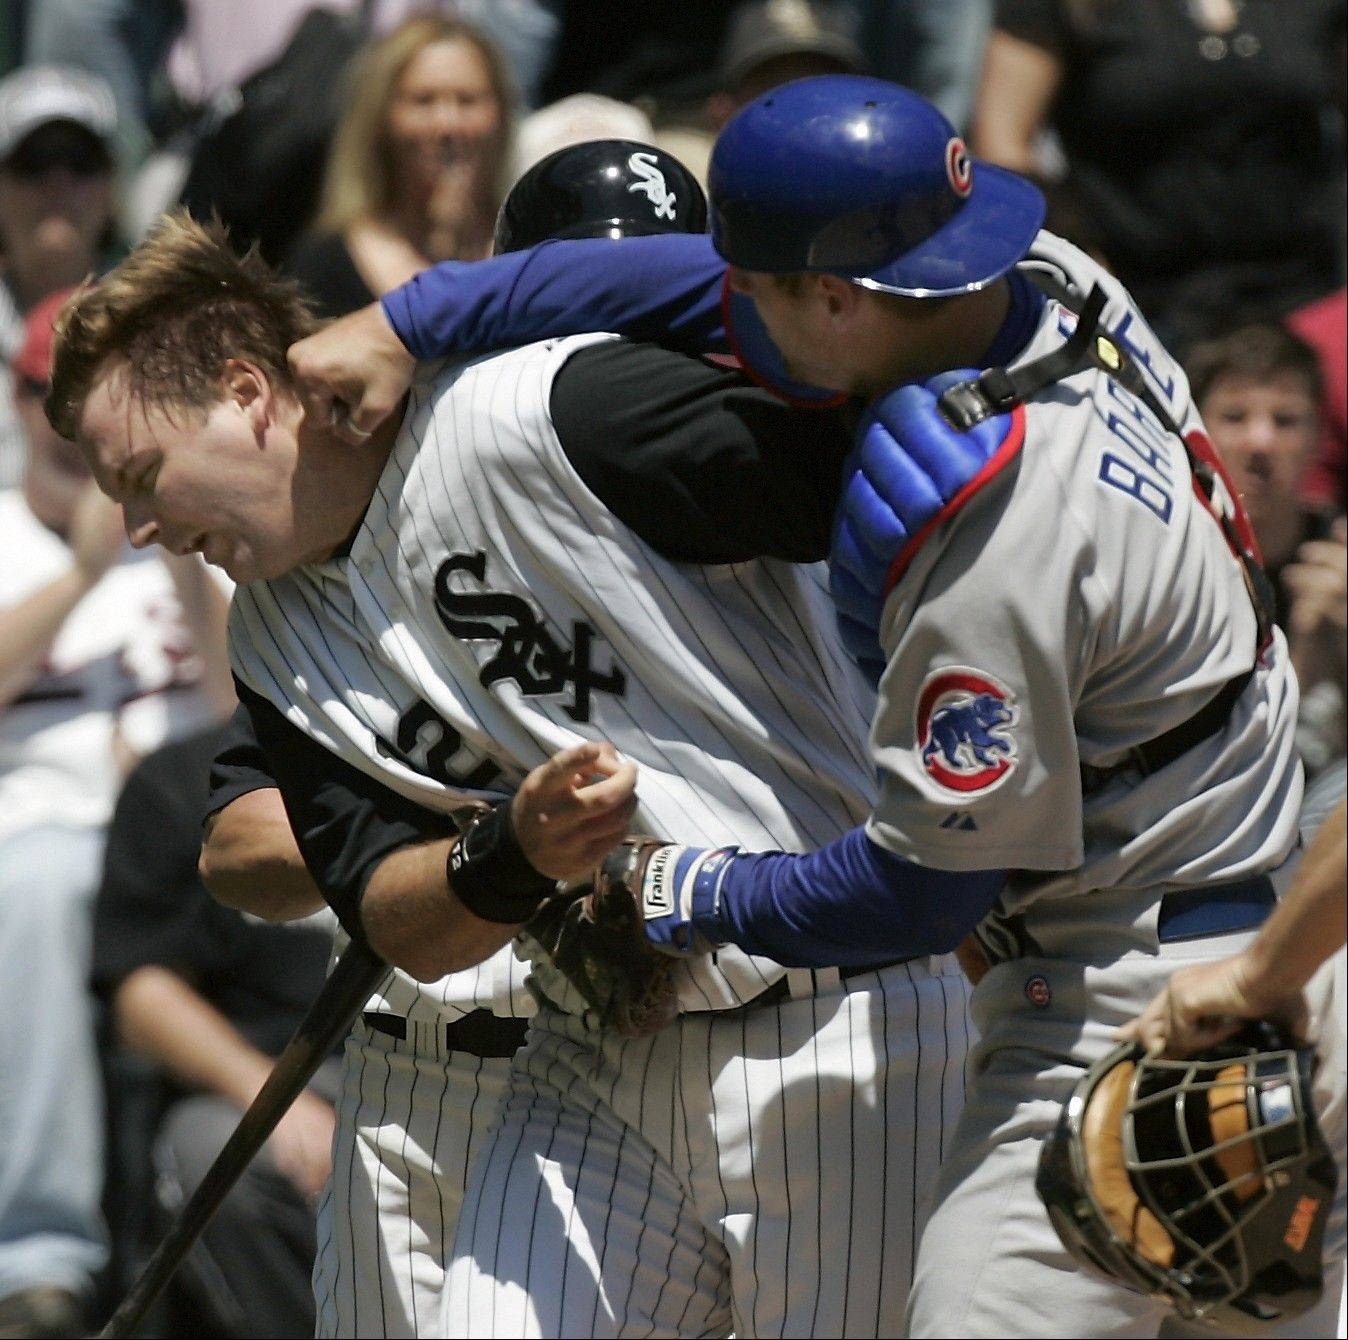 White Sox catcher AJ Pierzynski is punched by Cubs catcher Michael Barrett in the second inning in game two of the season series.